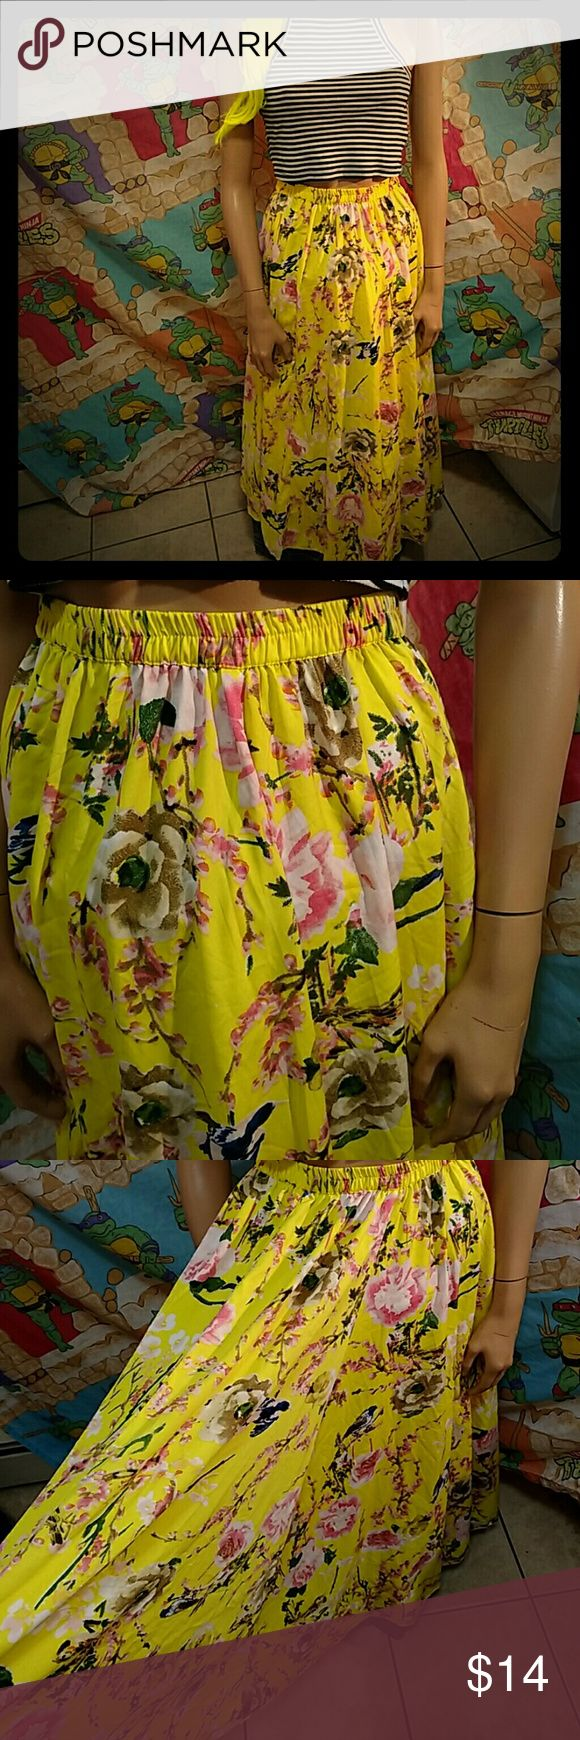 Printed neon flower skirt Size large waist 30 unstretched and 35 length. Its a neon yellow, very vibrant. Hard to see in pics but super cute. Pinned on mannequin. Skirts Maxi